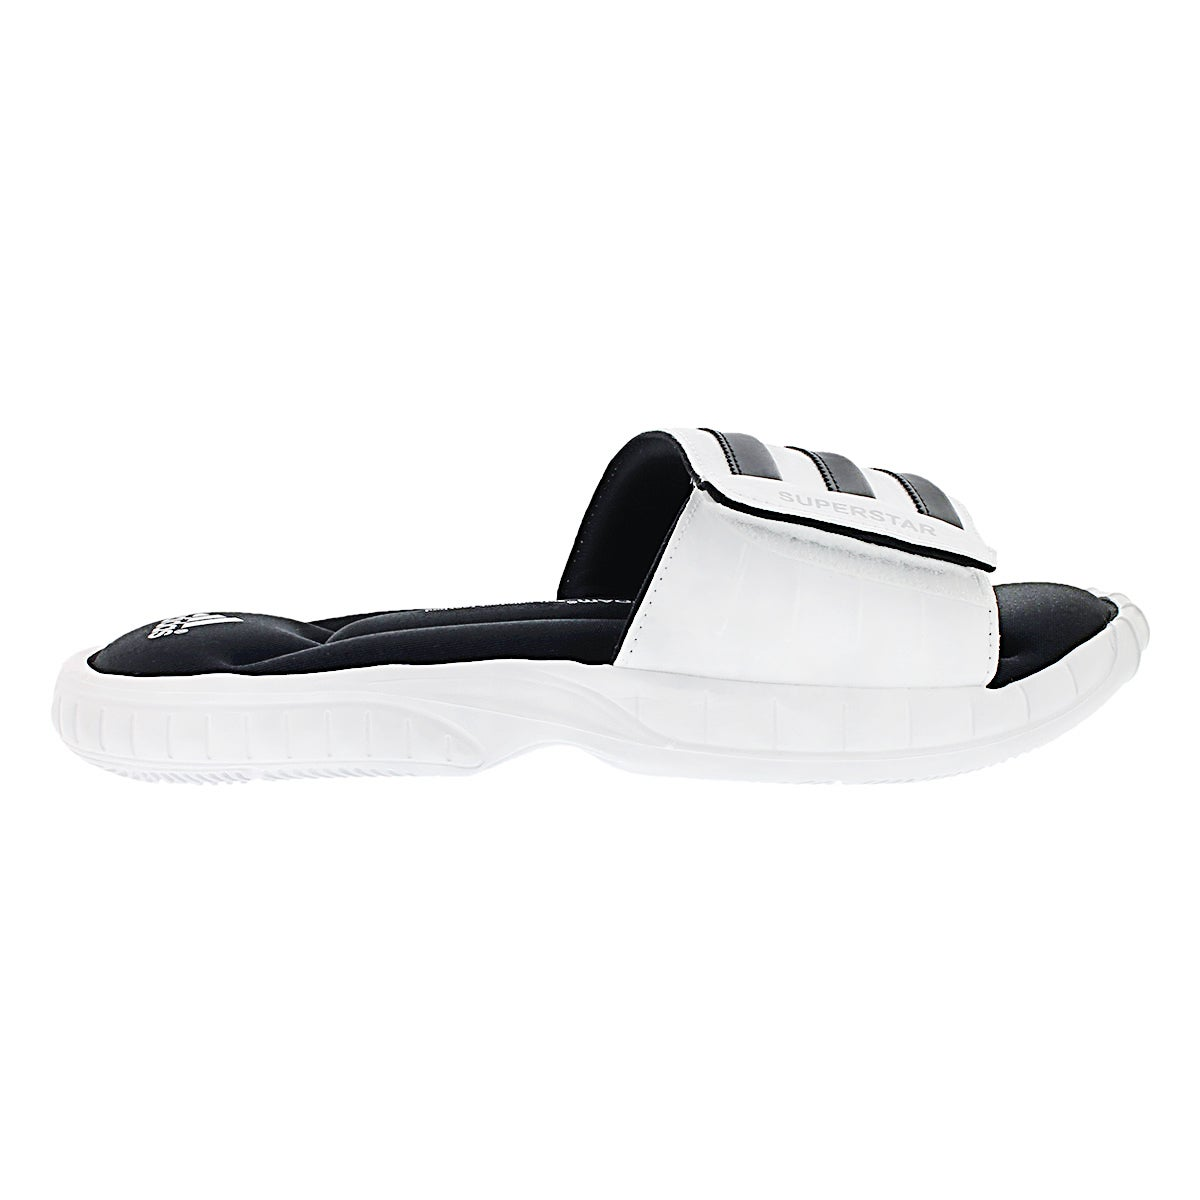 Mns Superstar 3G wht/blk/slv slide